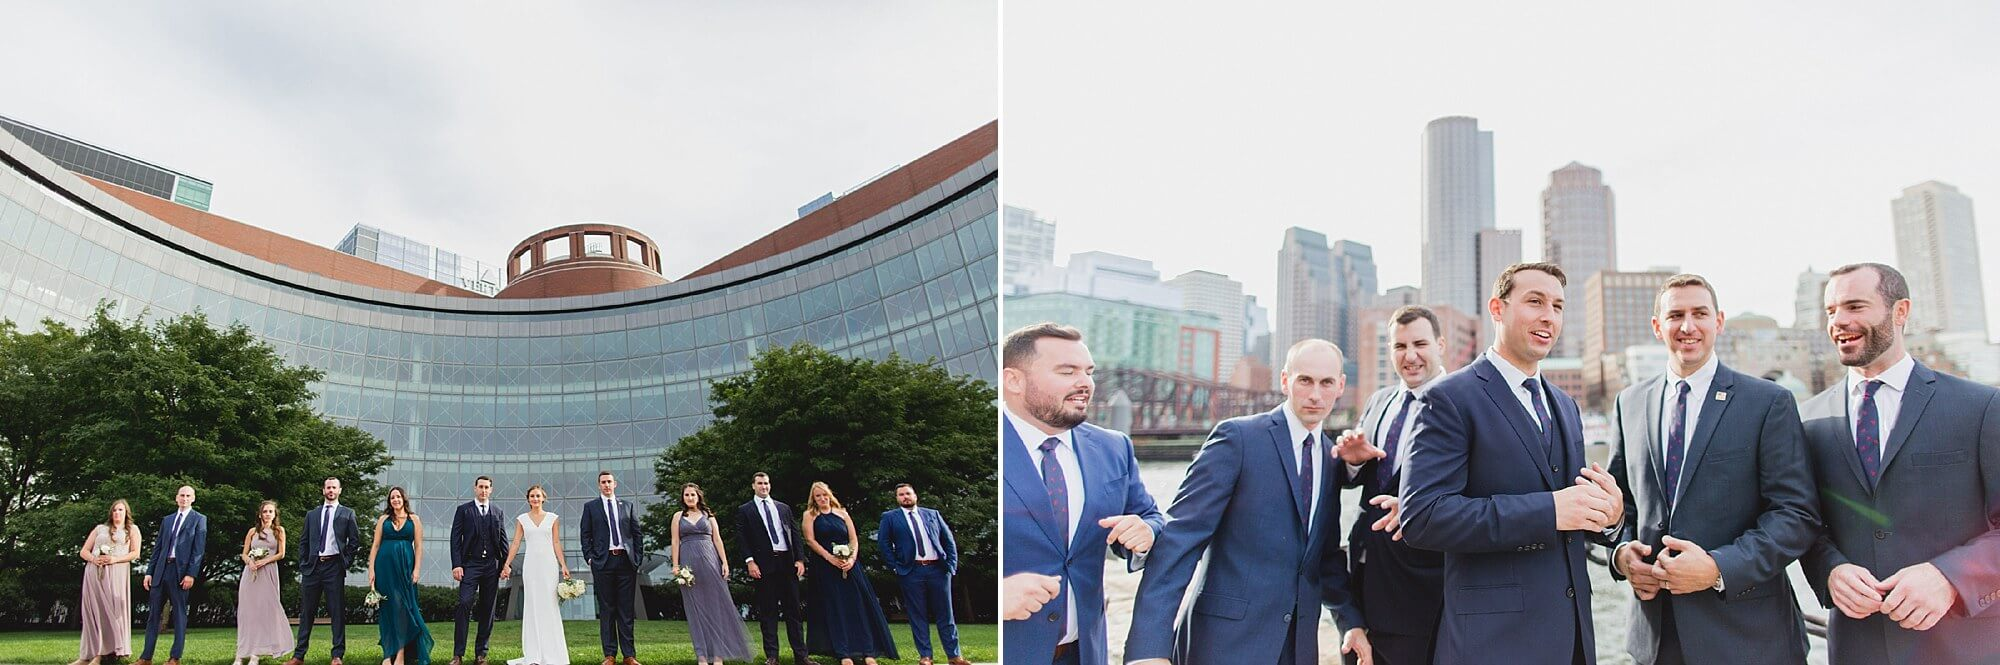 Boston Seaport Wedding - Ebersole Photo_0016.jpg